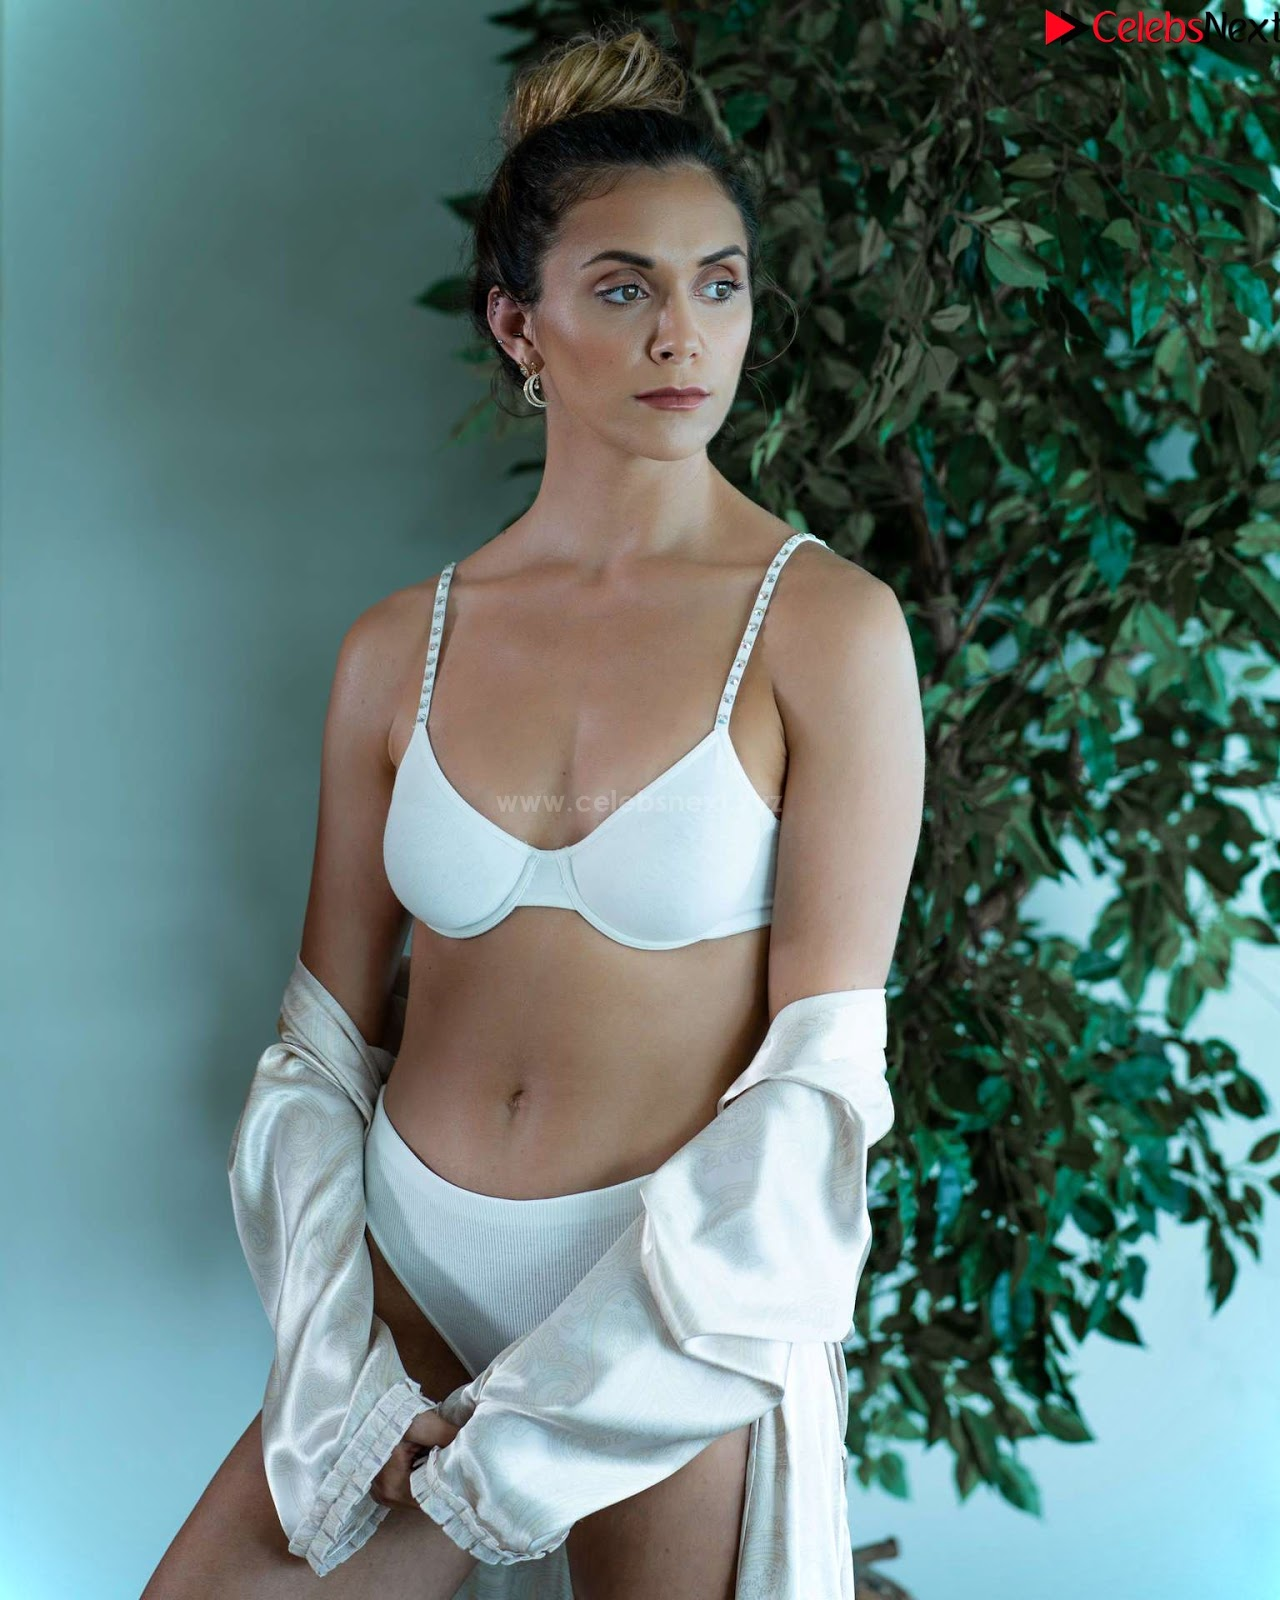 Alyson-Stoner-in-White-Bra-CELEBRITYBOOTY.CO+Exclusive+Celebrity+Pics+001.jpg